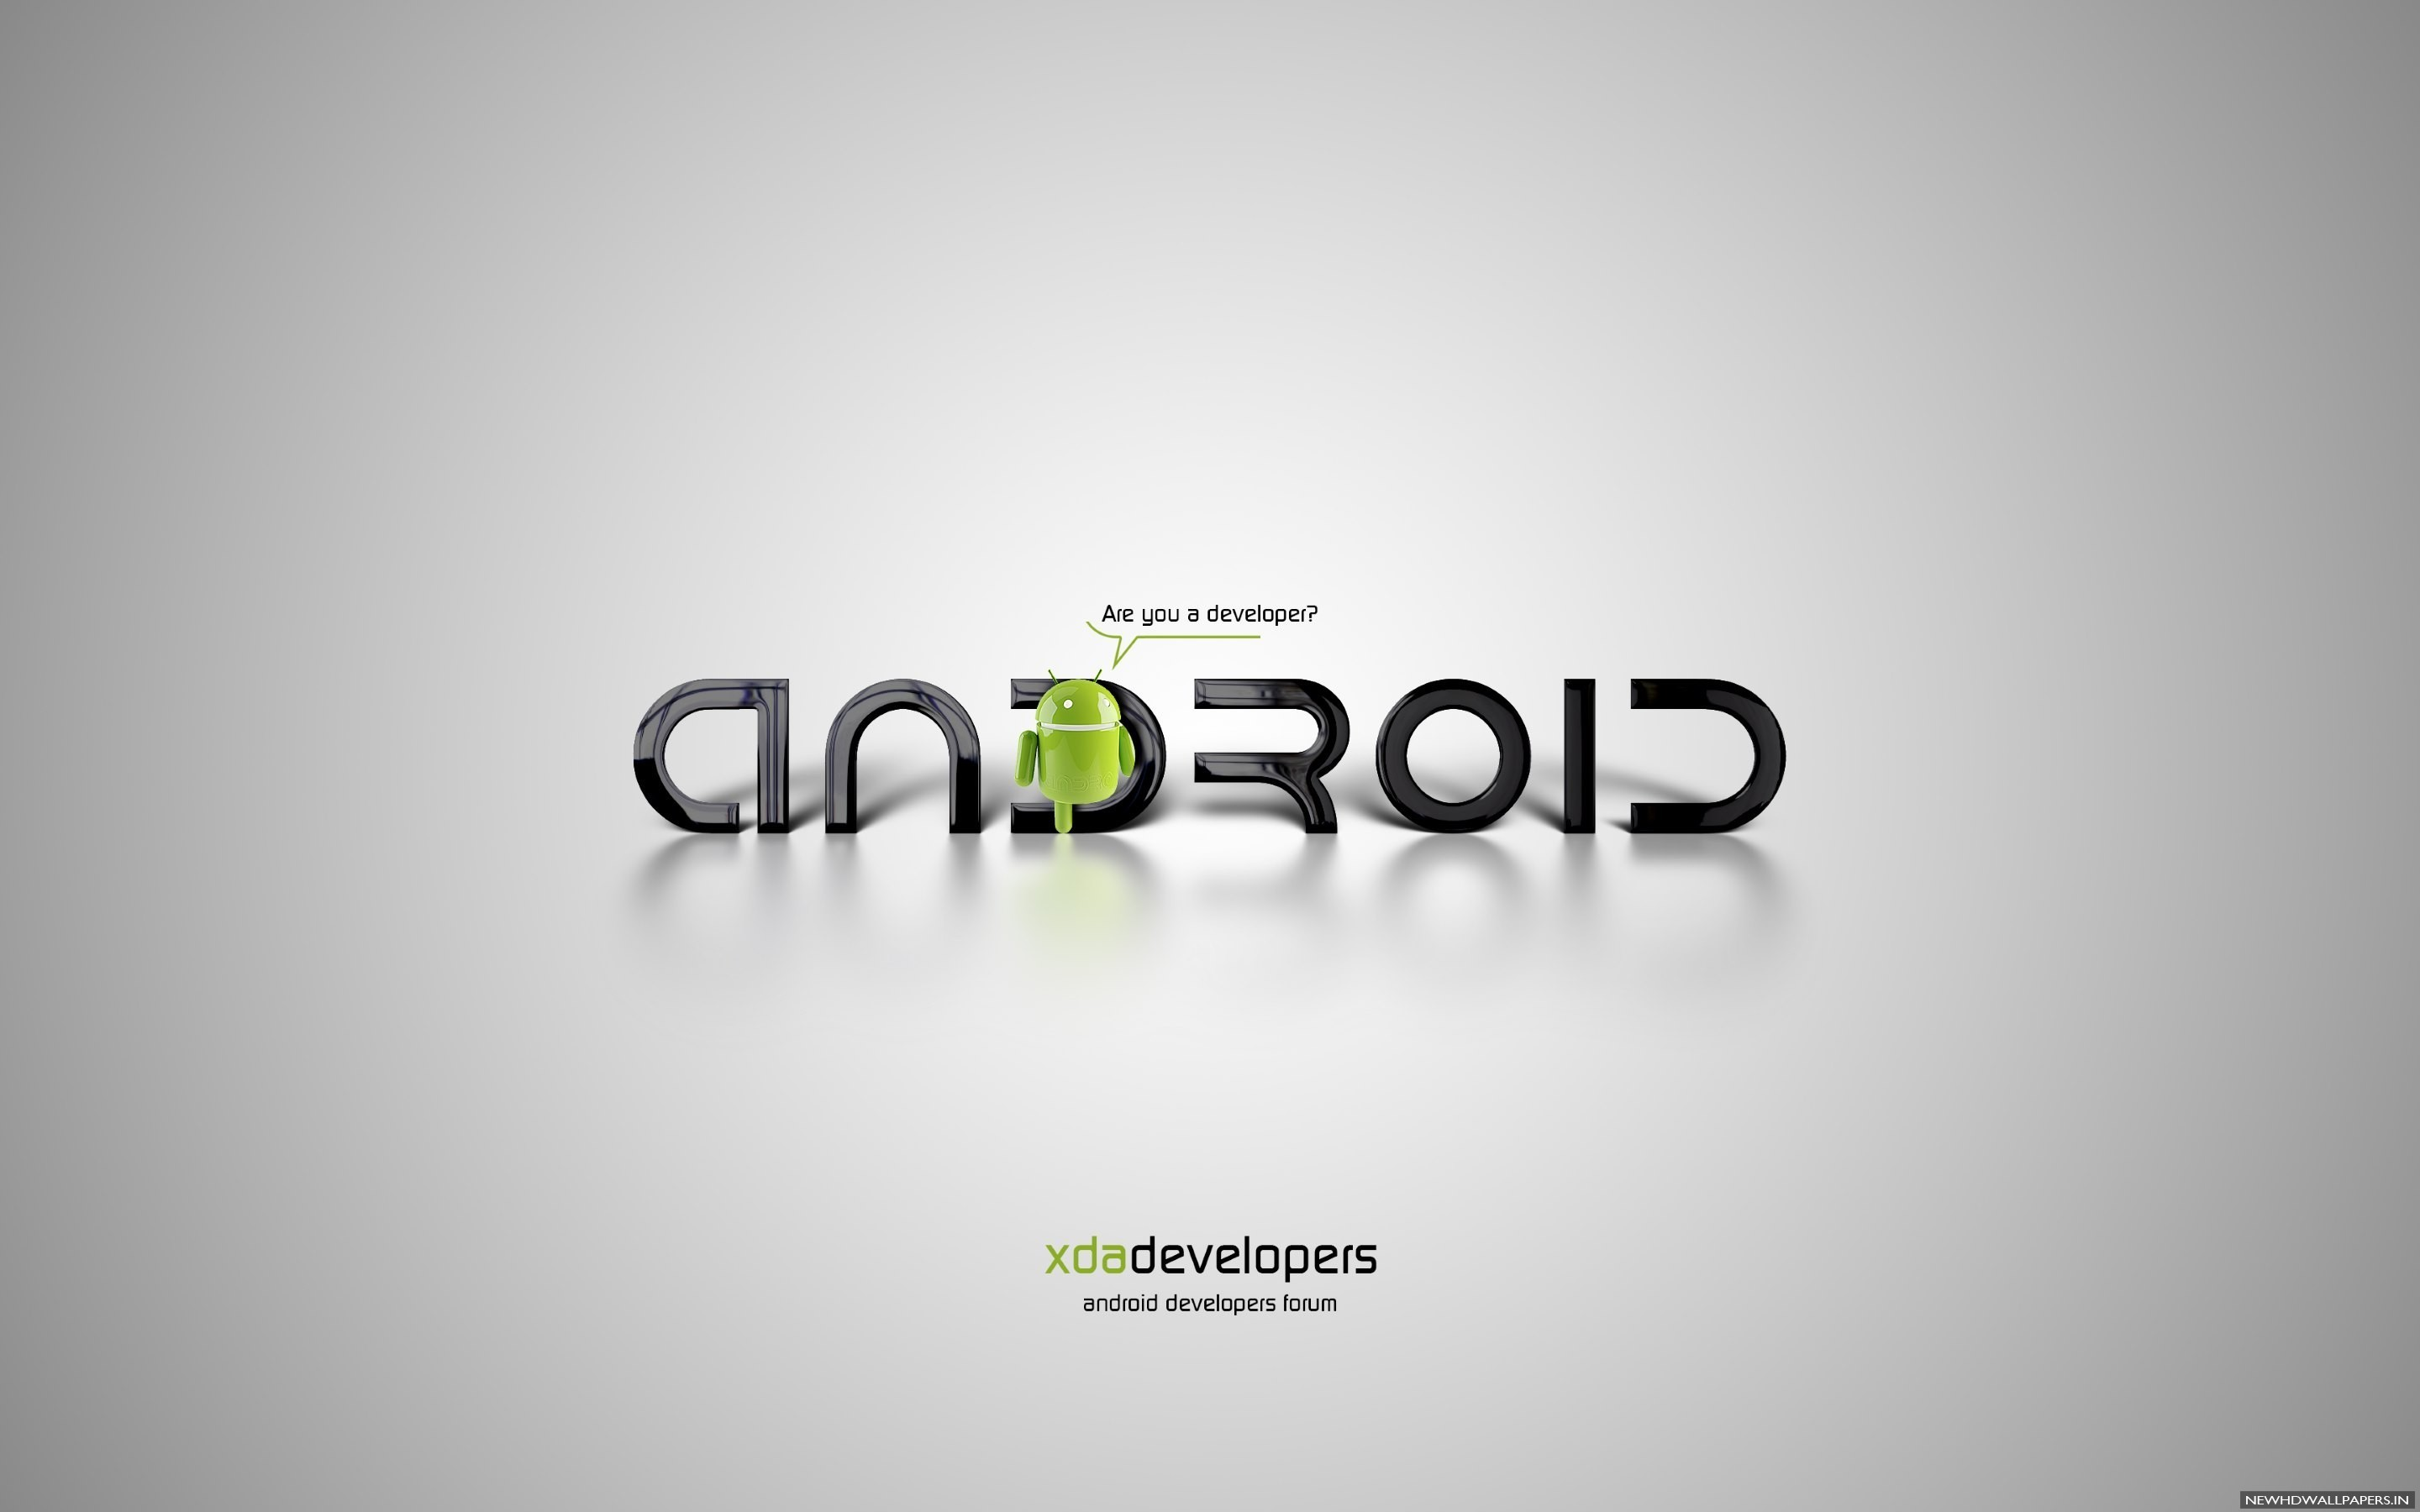 2880x1800 XDA Android Developers Forum Wallpaper